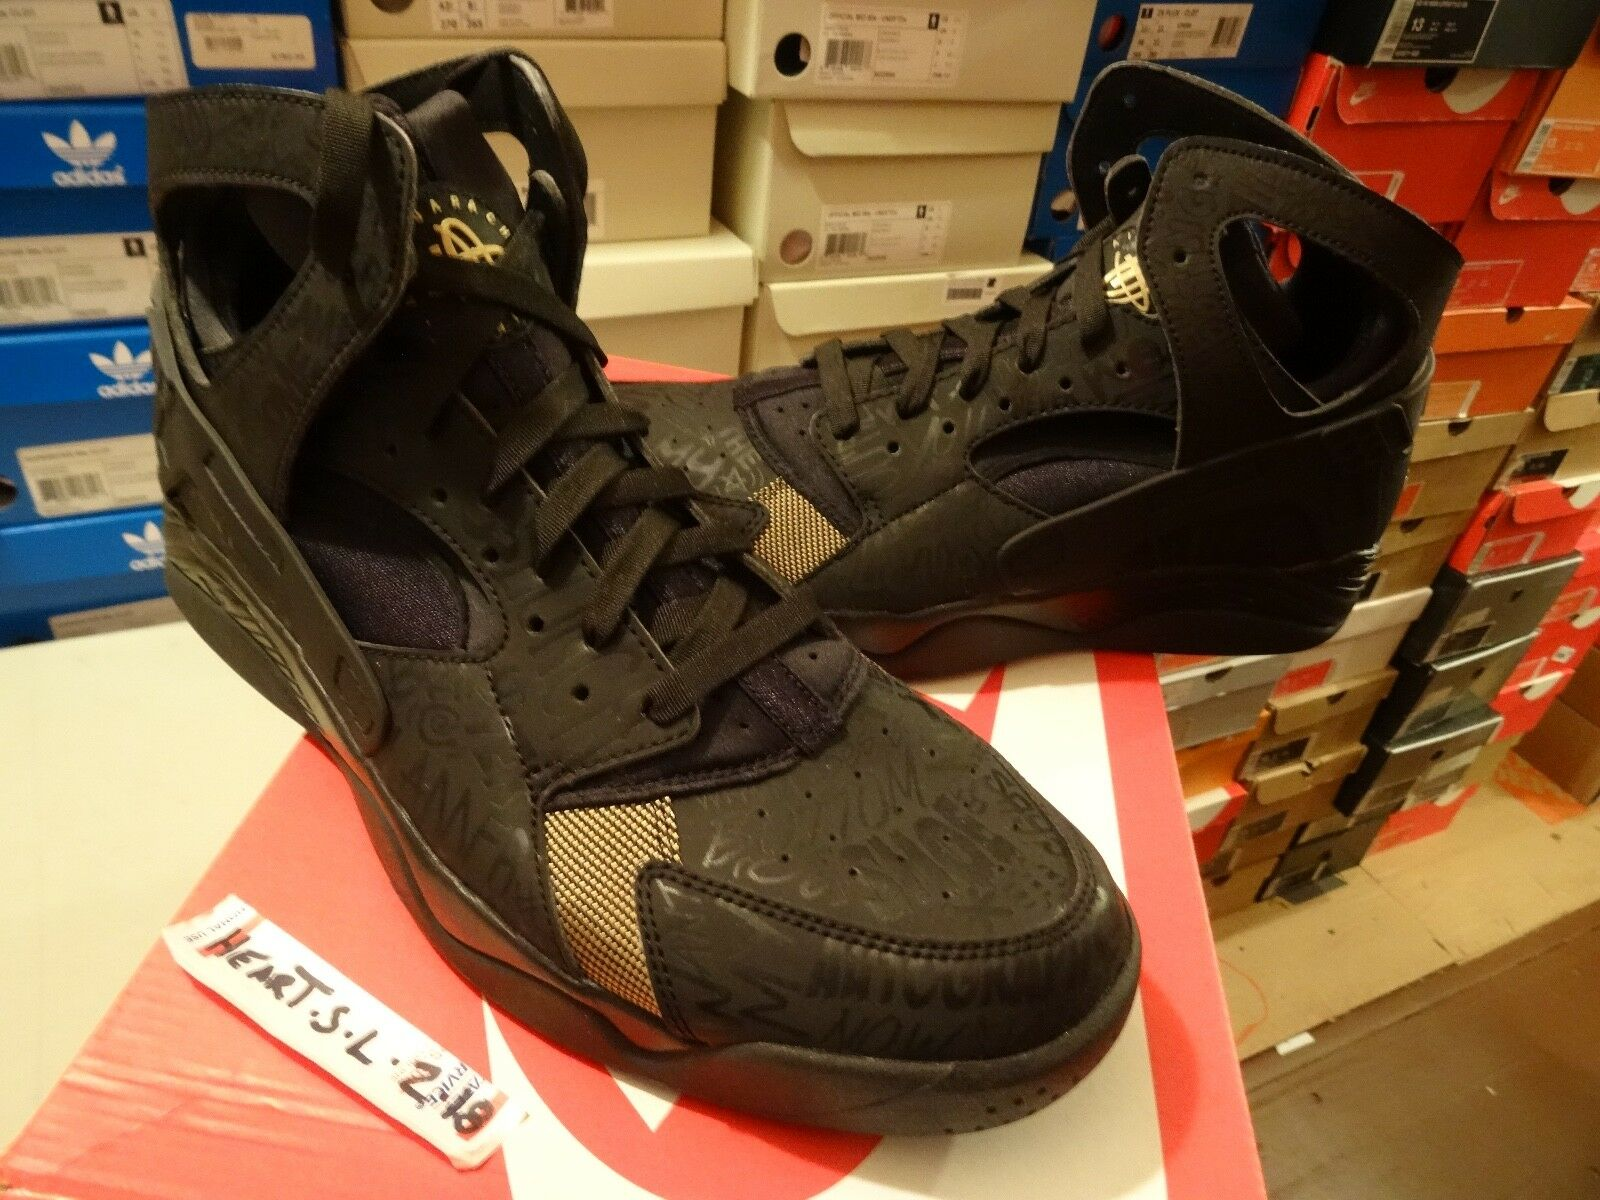 df441f94e99856 DS Nike Air Flight Huarache Huarache Huarache PRM QS Trash Talk Fab Five SZ  10.5 686203